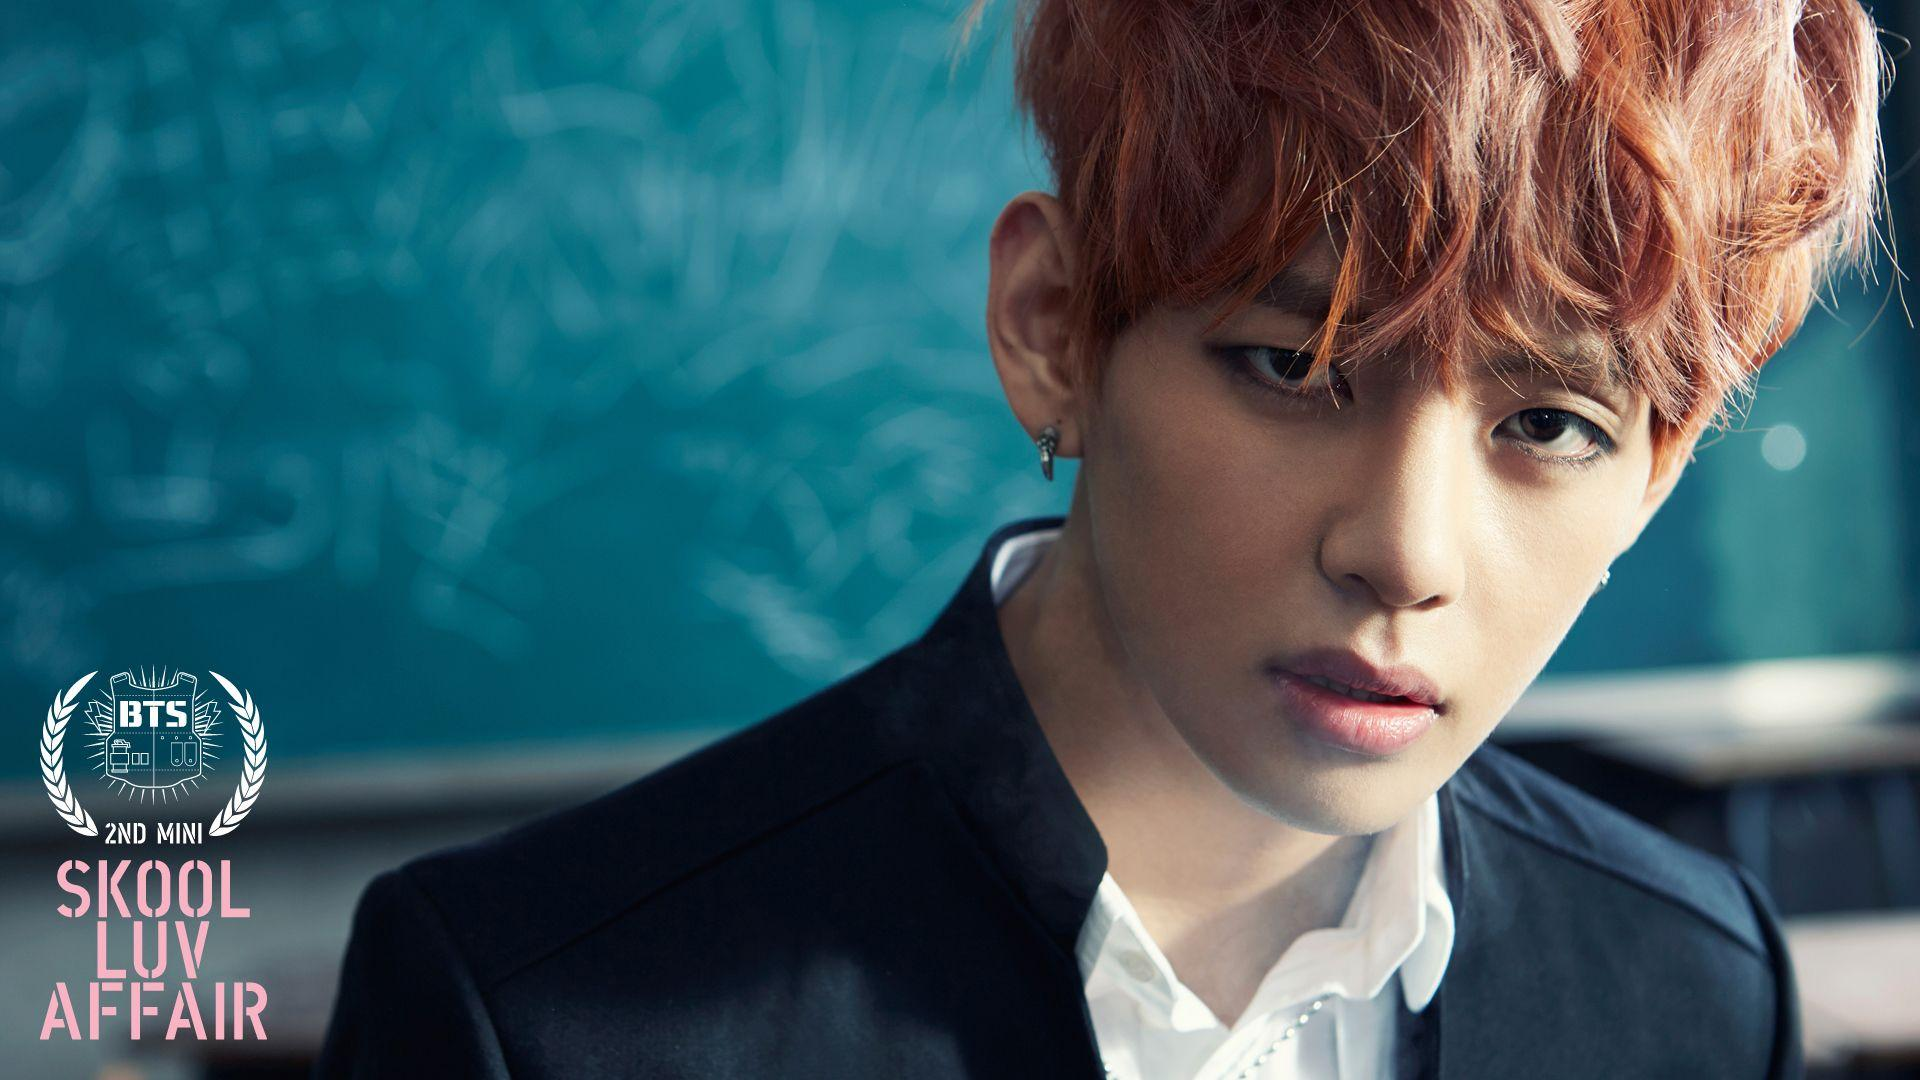 V BTS images Tae Tae HD wallpaper and background photos 40936666 1920x1080